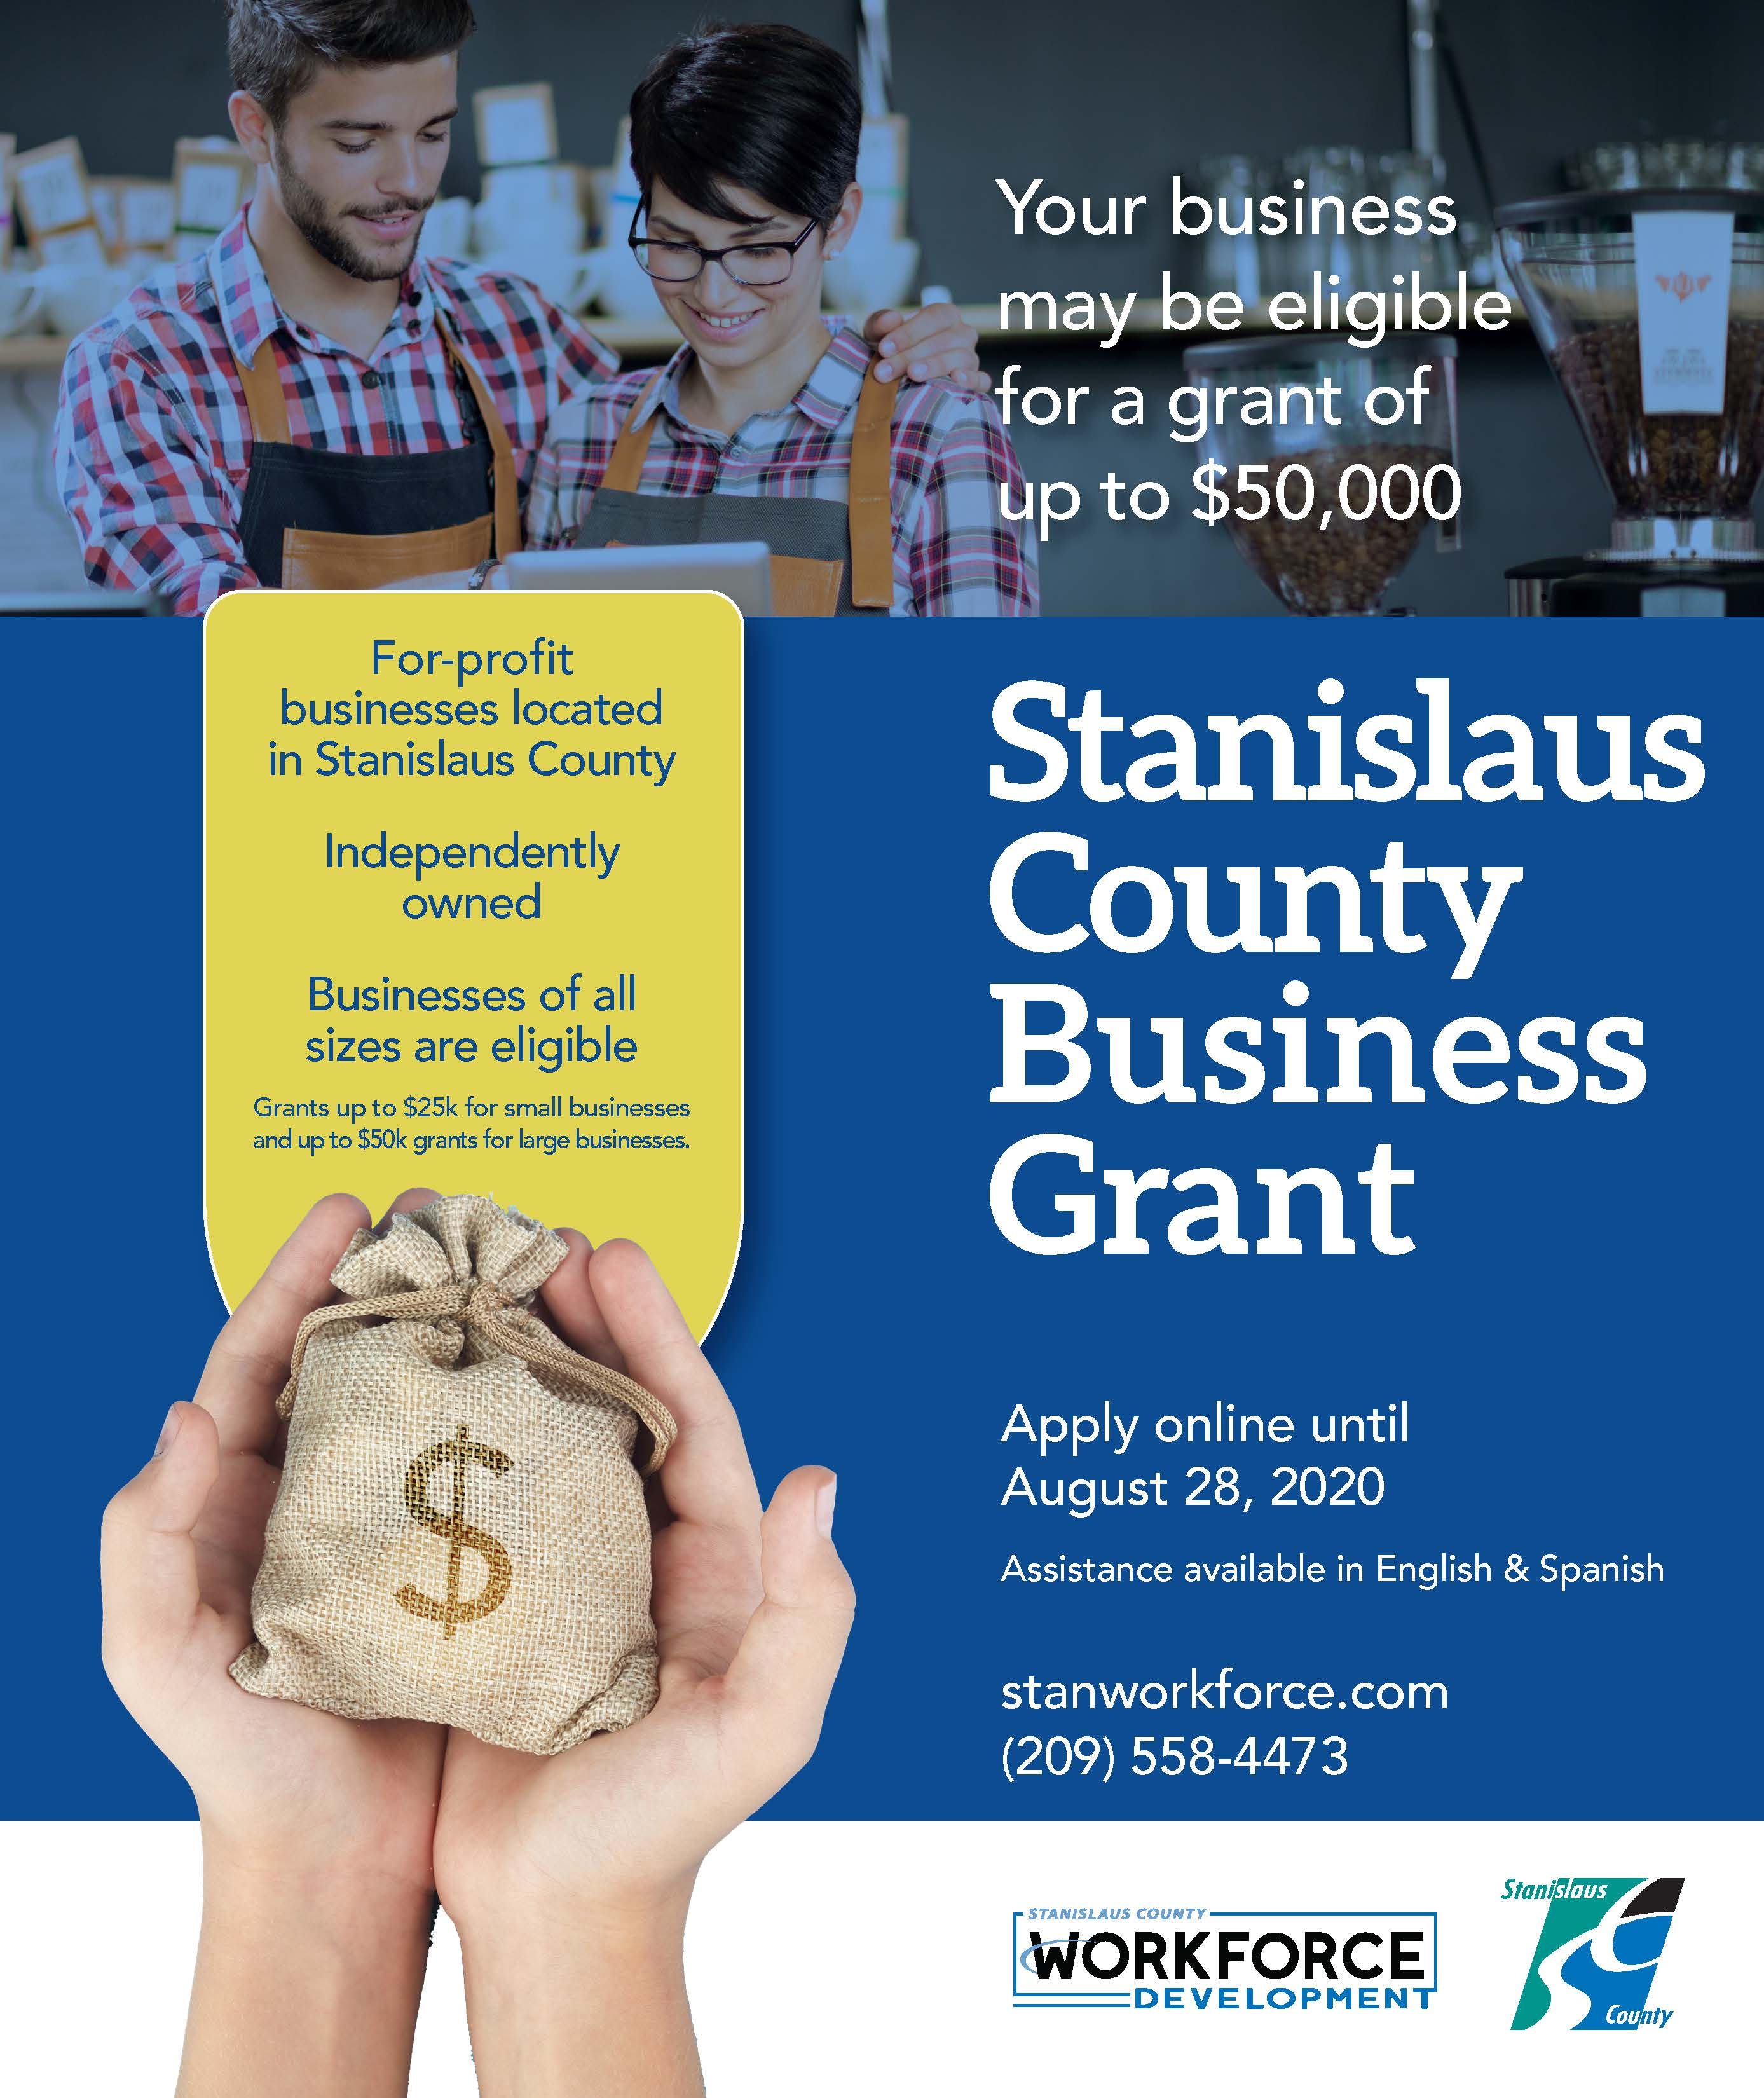 Stanislaus Business Grant_modesto view OP